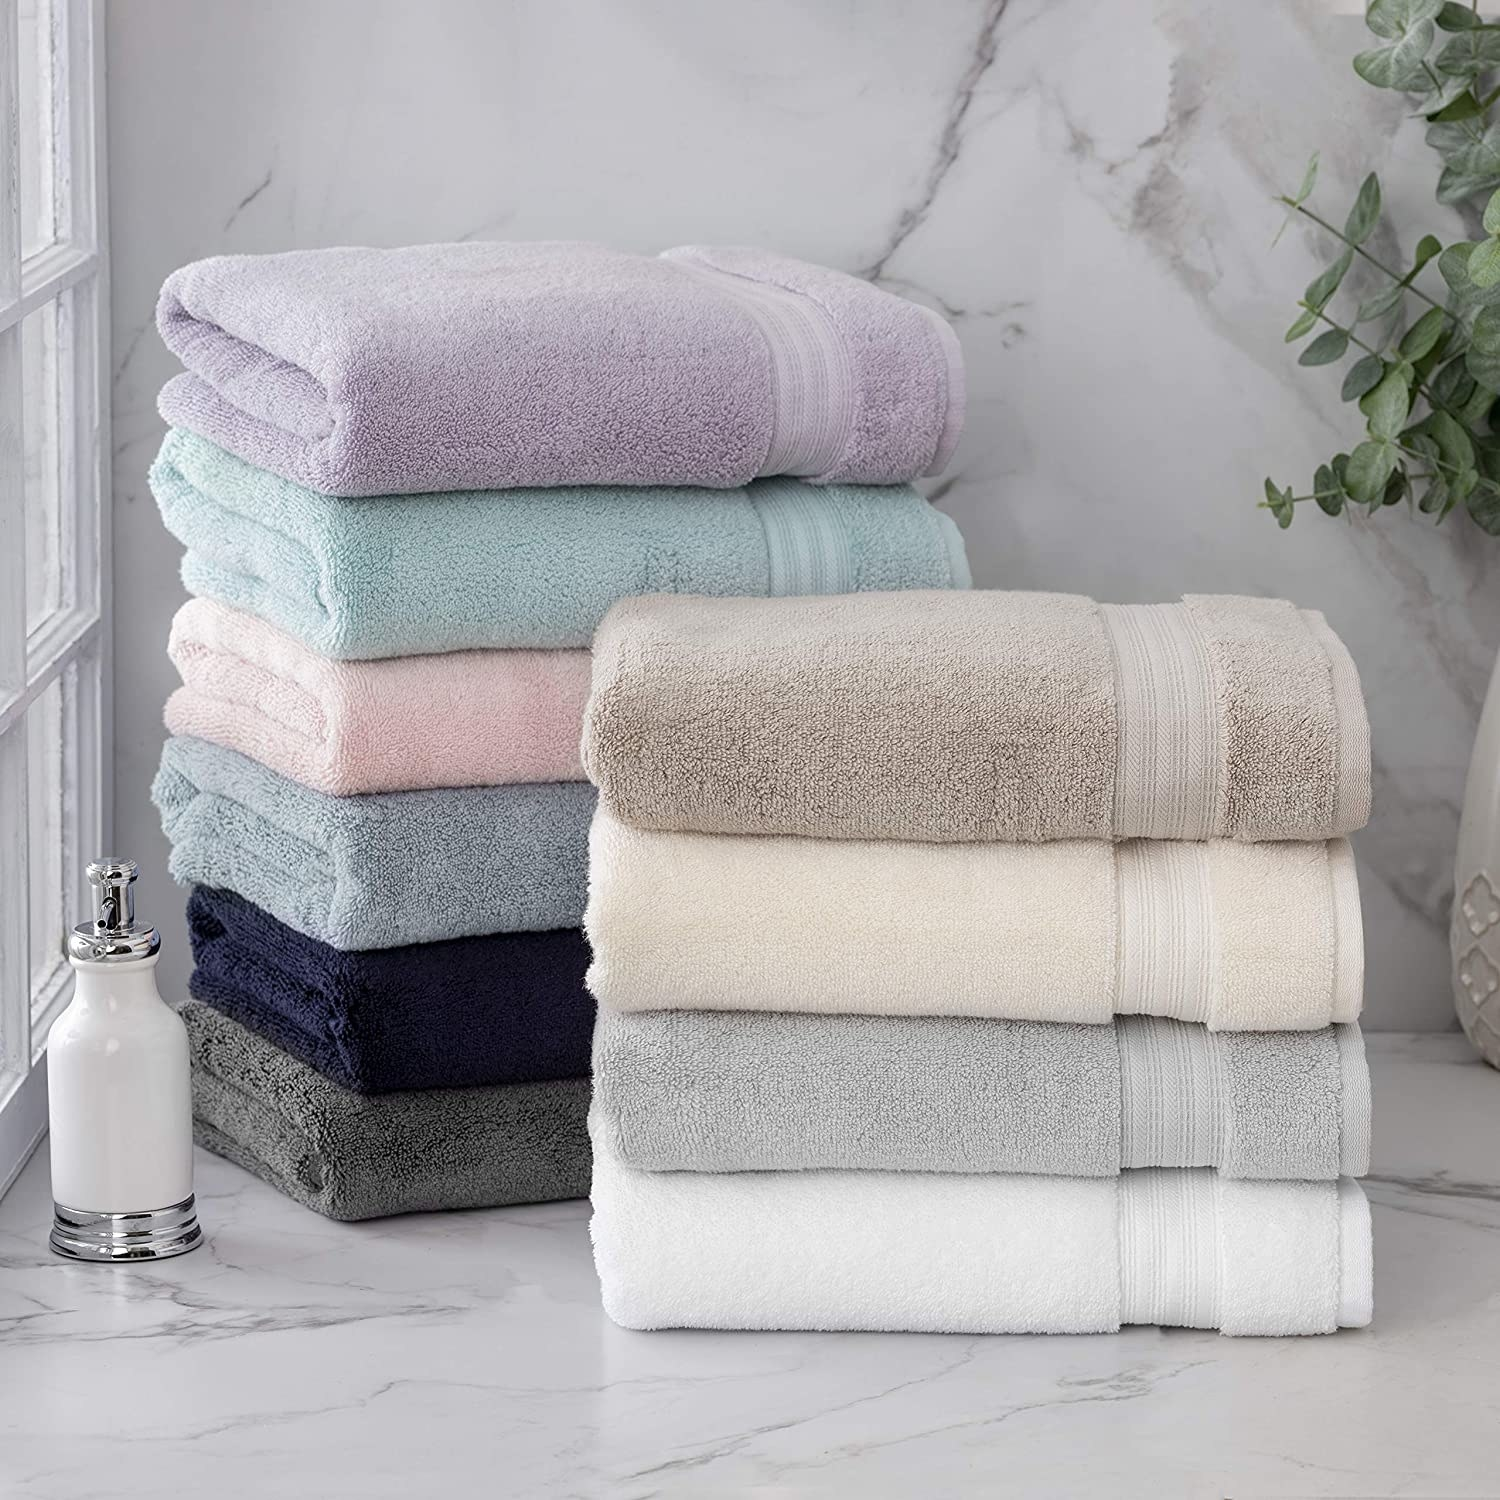 A stack of neatly folded bamboo bath towels on a marble vanity